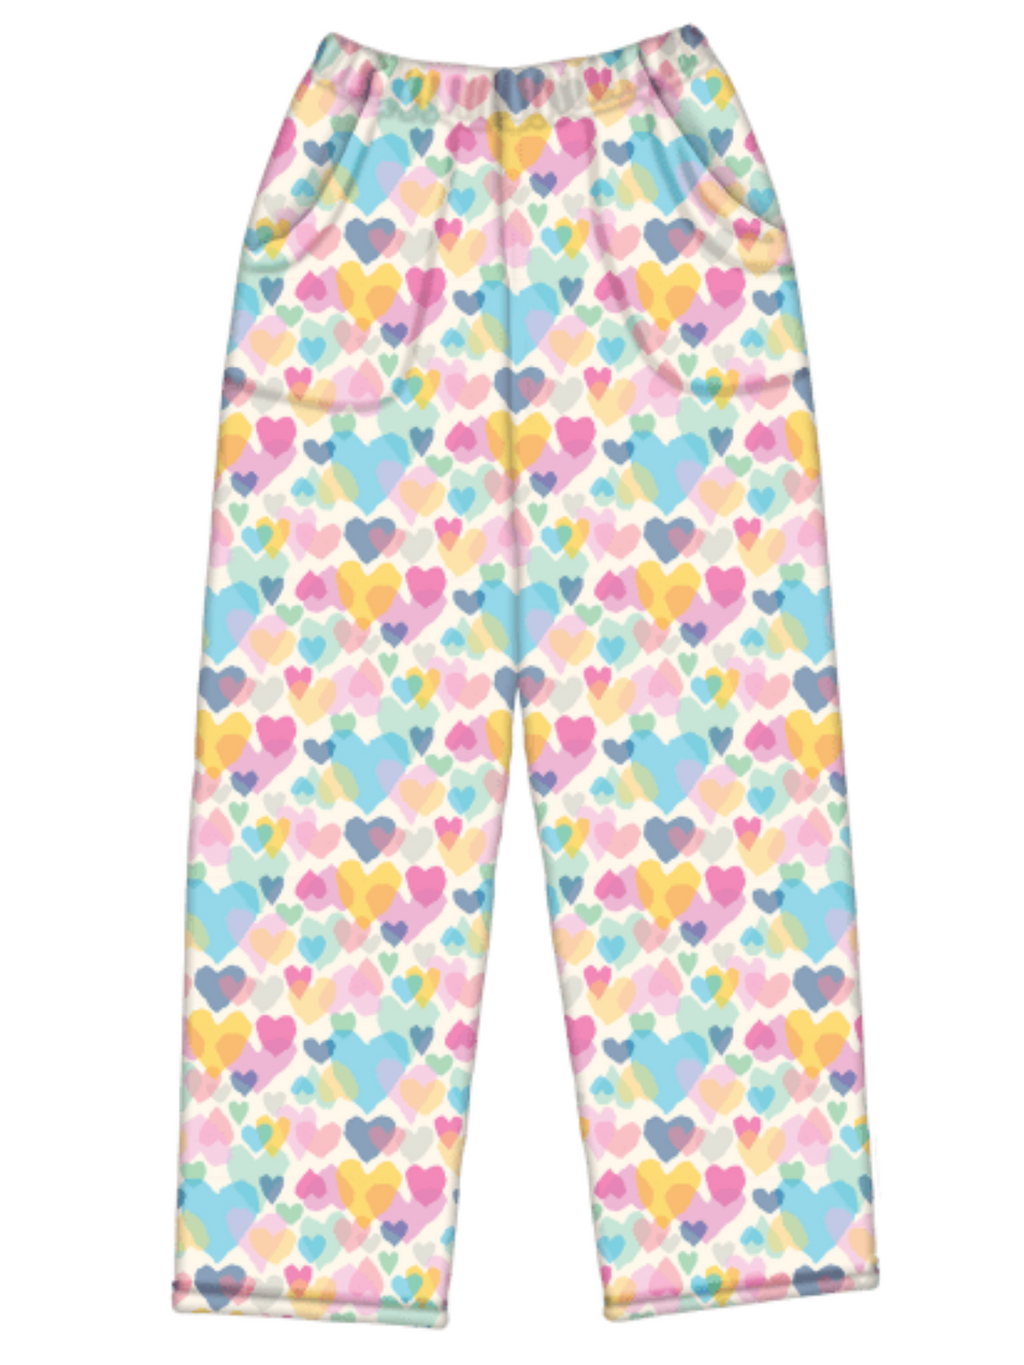 Pastel Hearts Fleece Pant